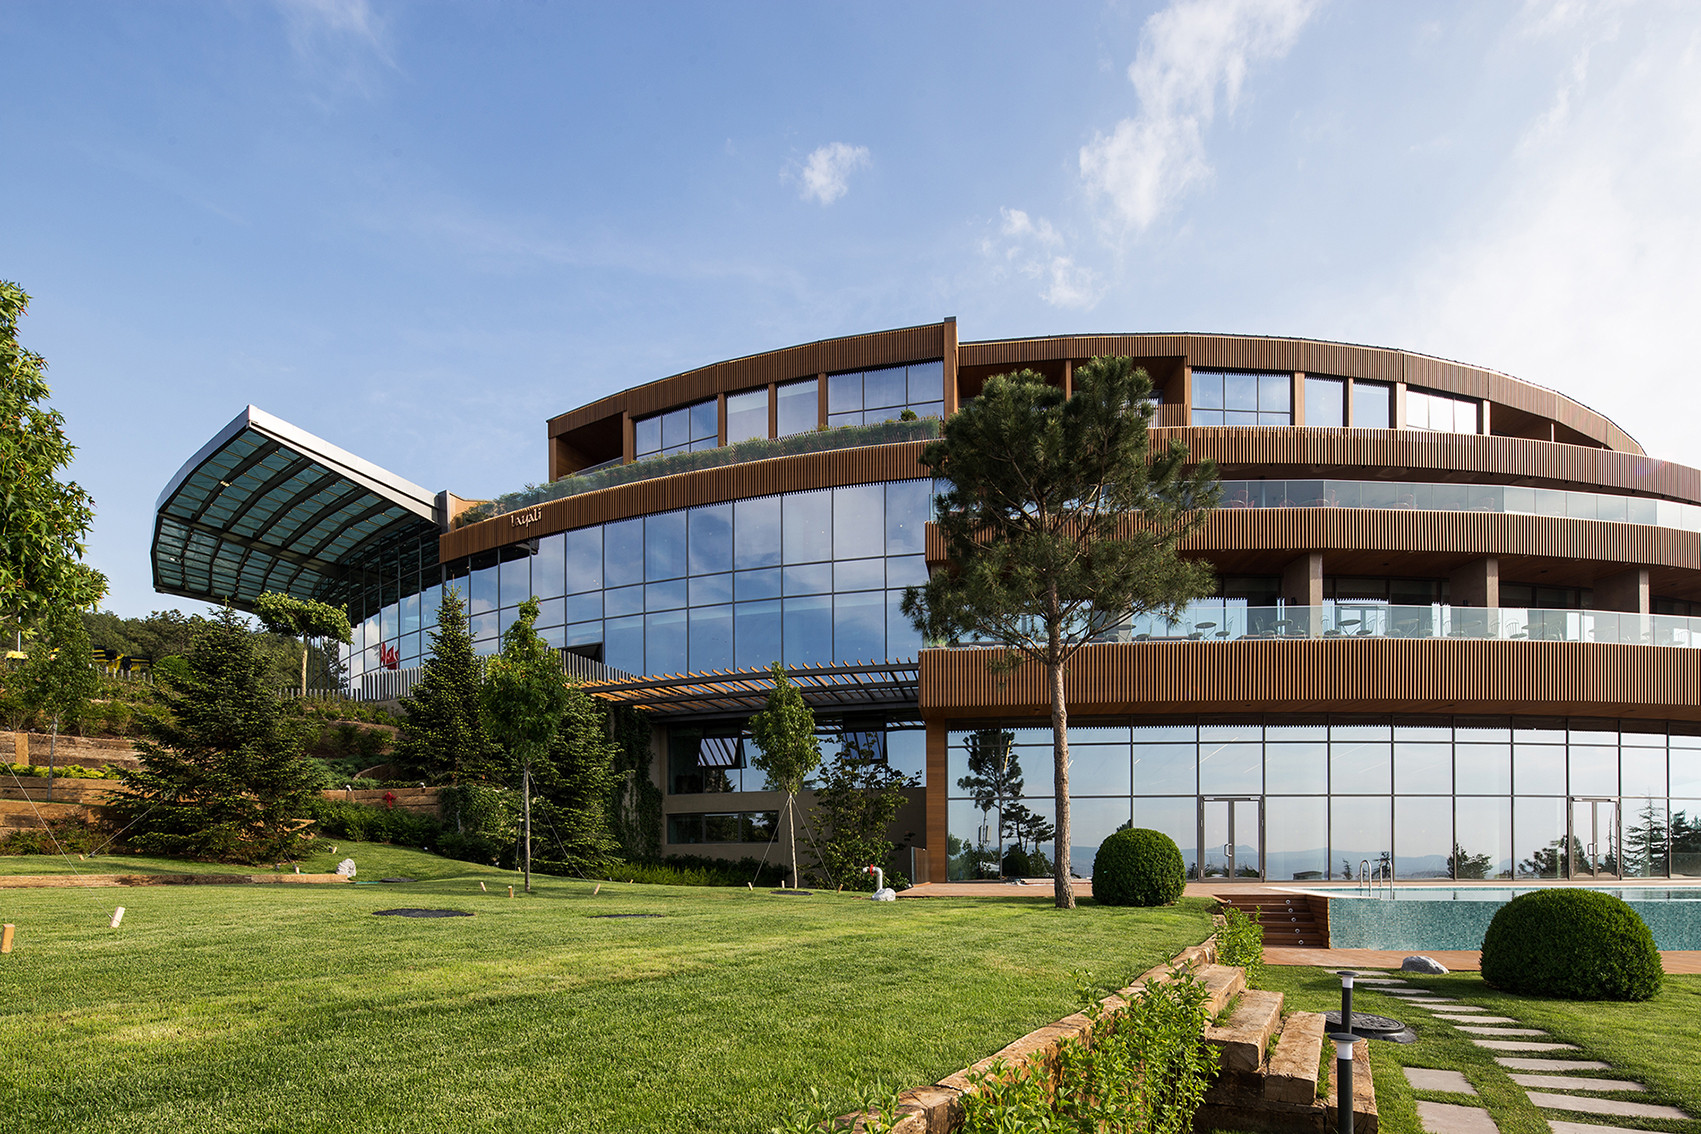 Gallery of skisehir Hotel and Spa / GD rchitecture - 19 - ^